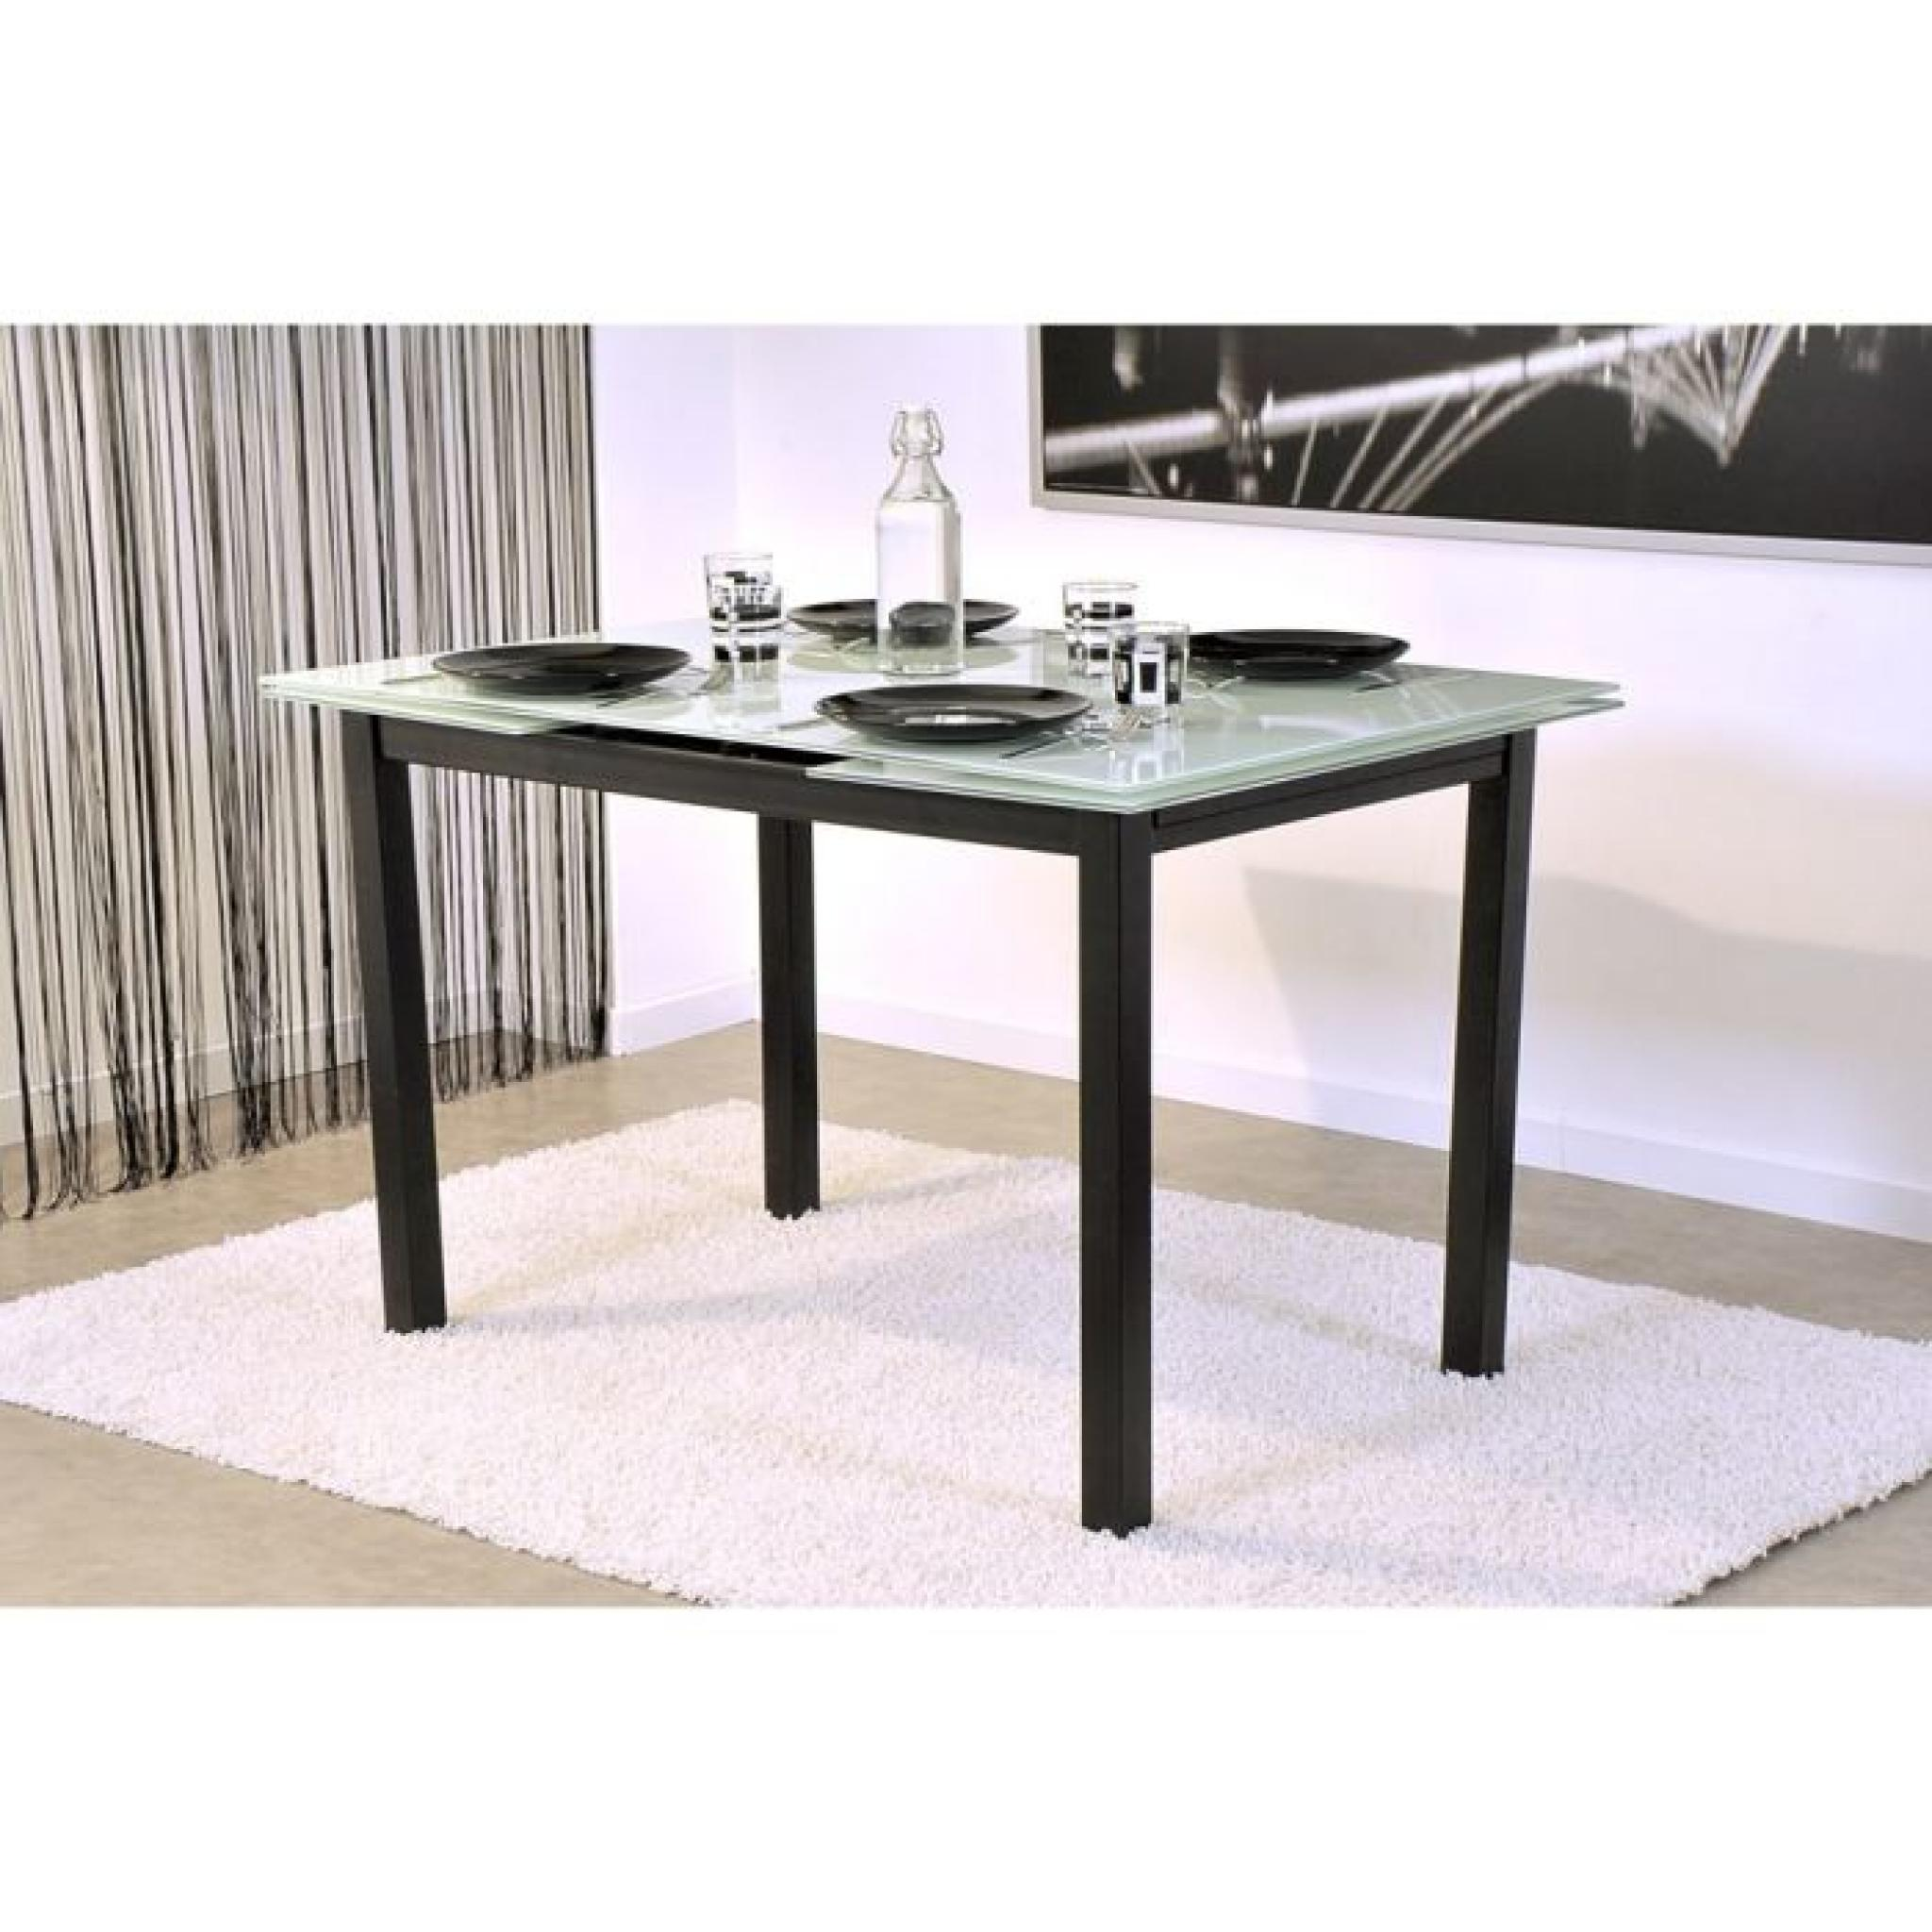 bora table extensible 120 200cm blanche et noire achat. Black Bedroom Furniture Sets. Home Design Ideas